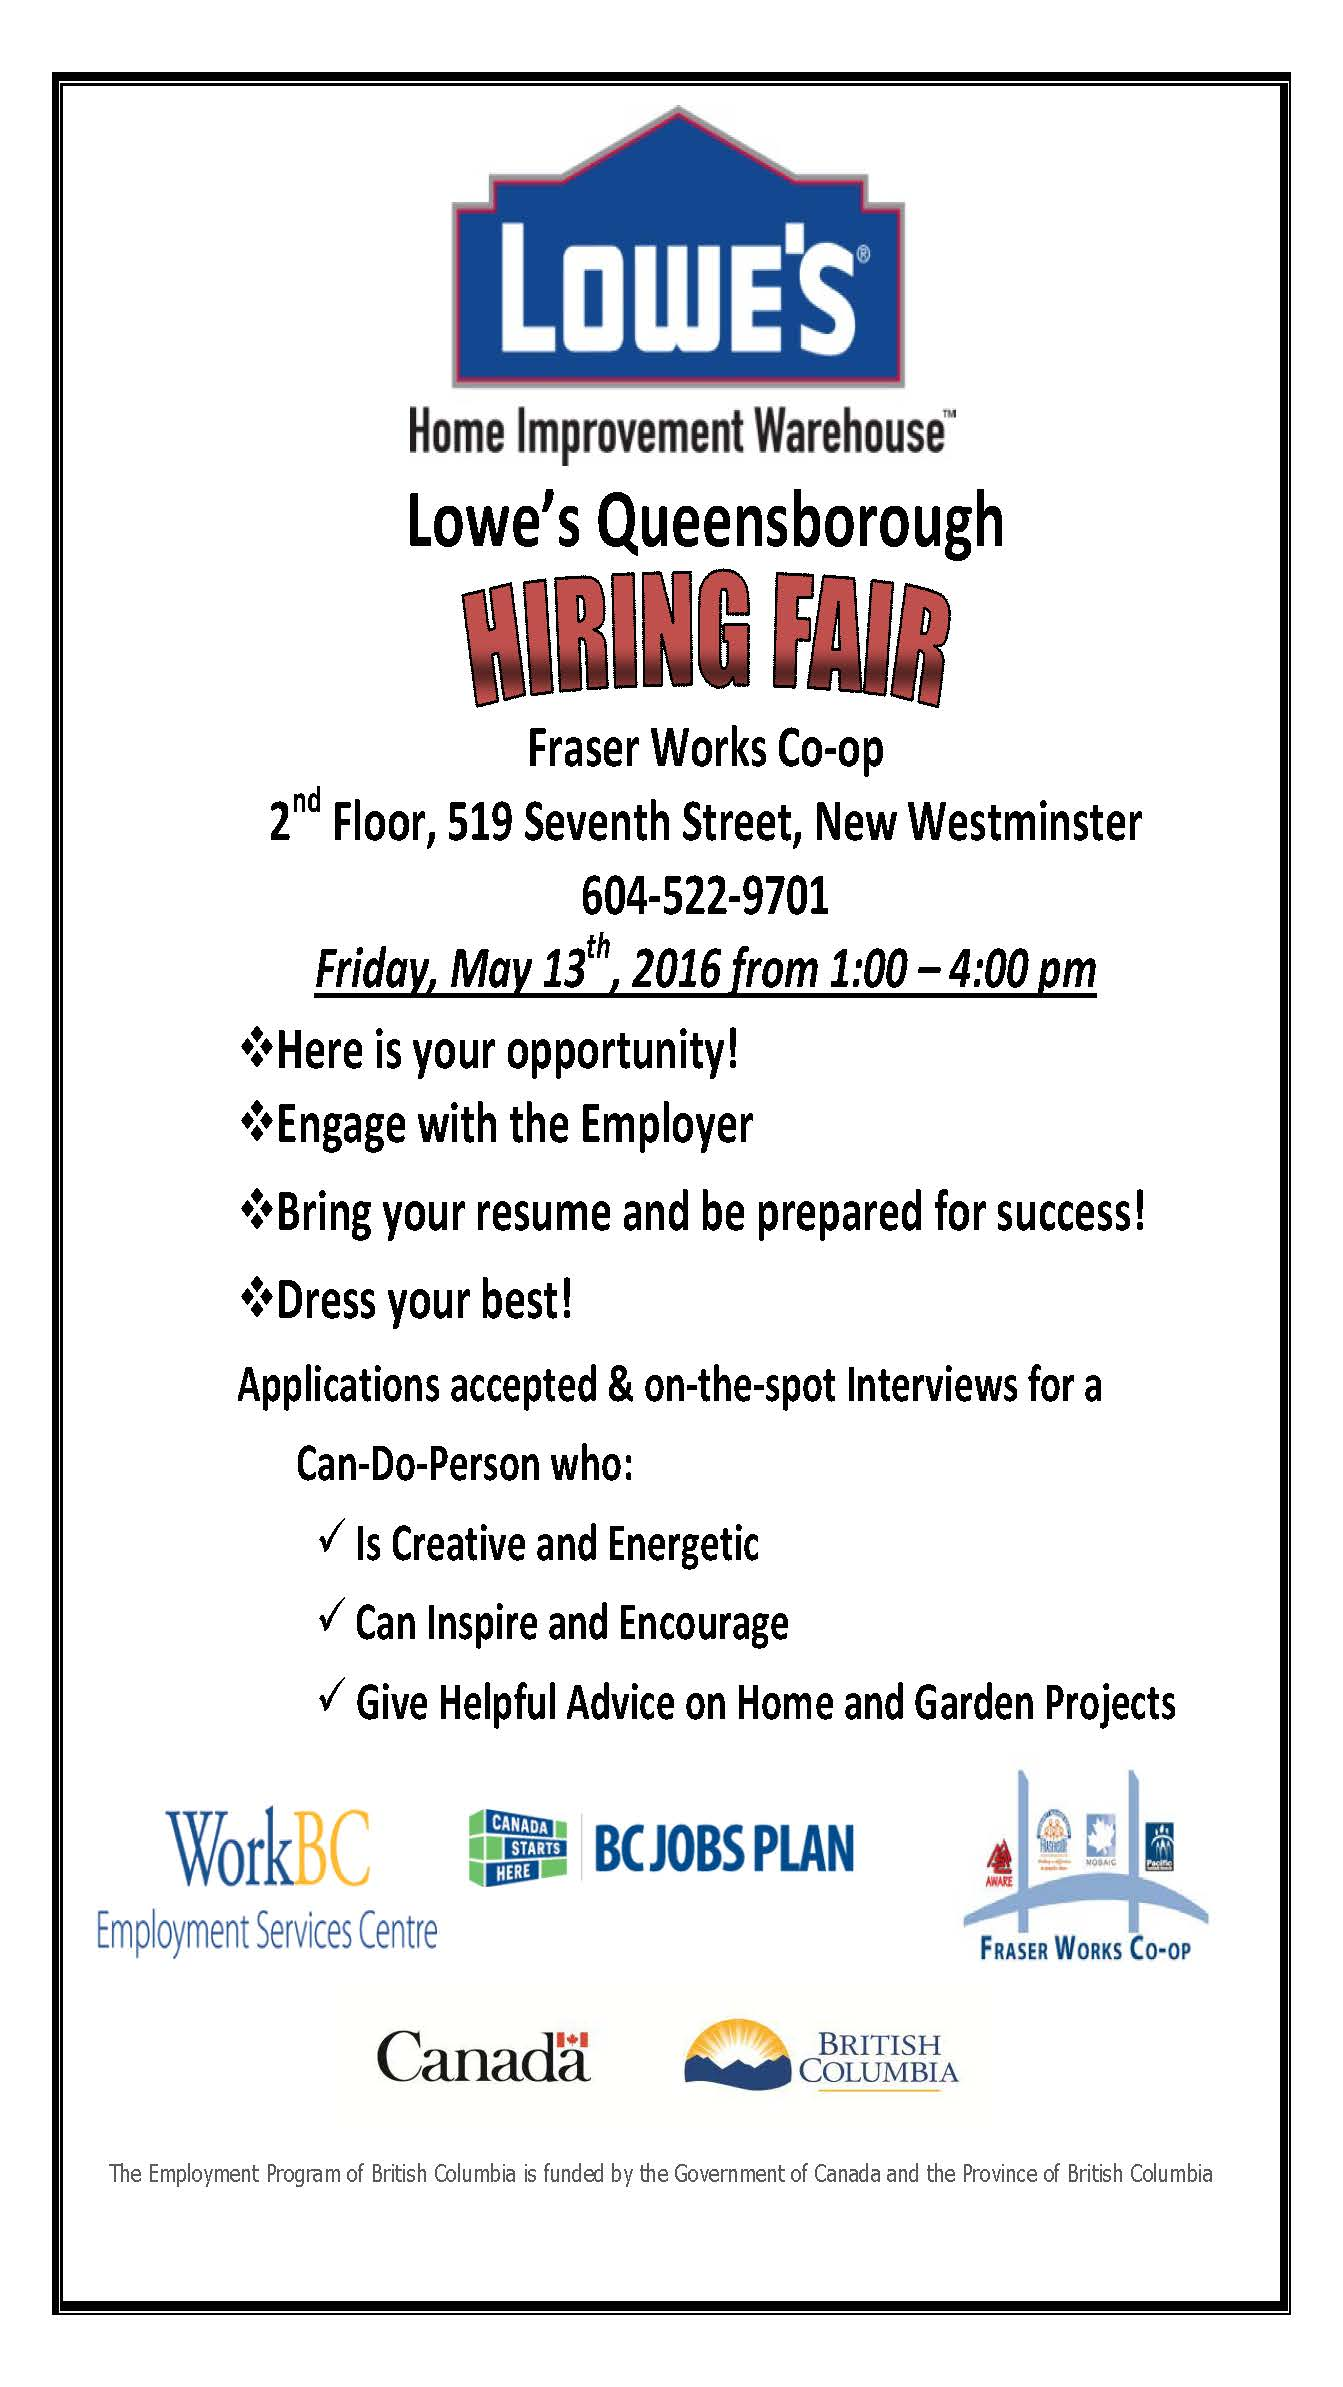 Lowe s Hiring Fair at Fraser Works Cooperative